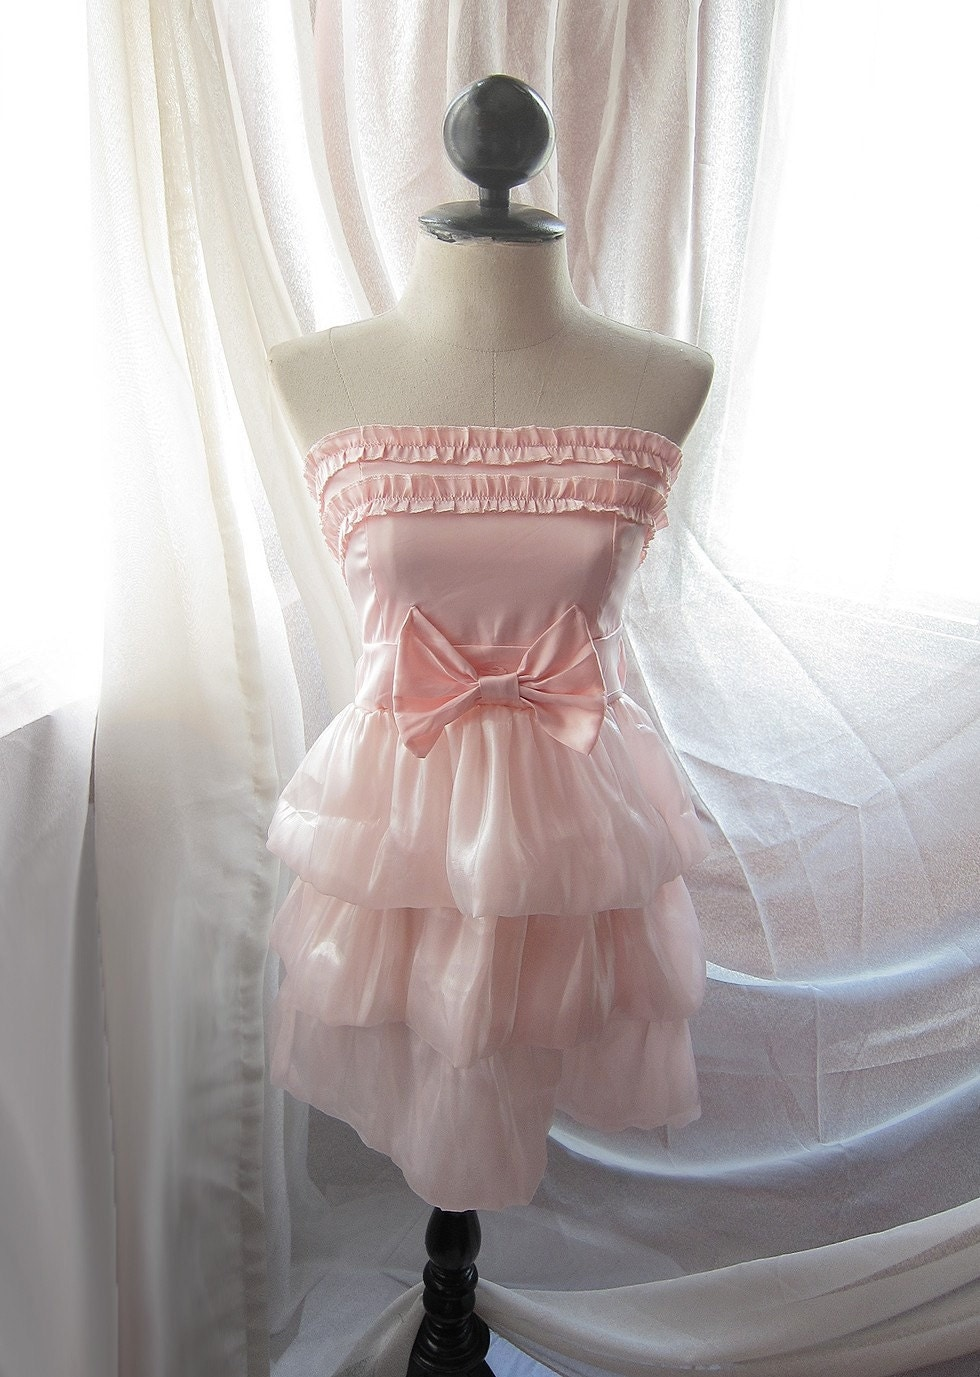 Soft Pale Angel Sweet Blush Candy Pink Ballerina Romantic Dreamy Misty Ruffled Bridal Inspired Cupcake Tiered Puffy Poofy Playful Satin Organza Taffeta Tube Dress